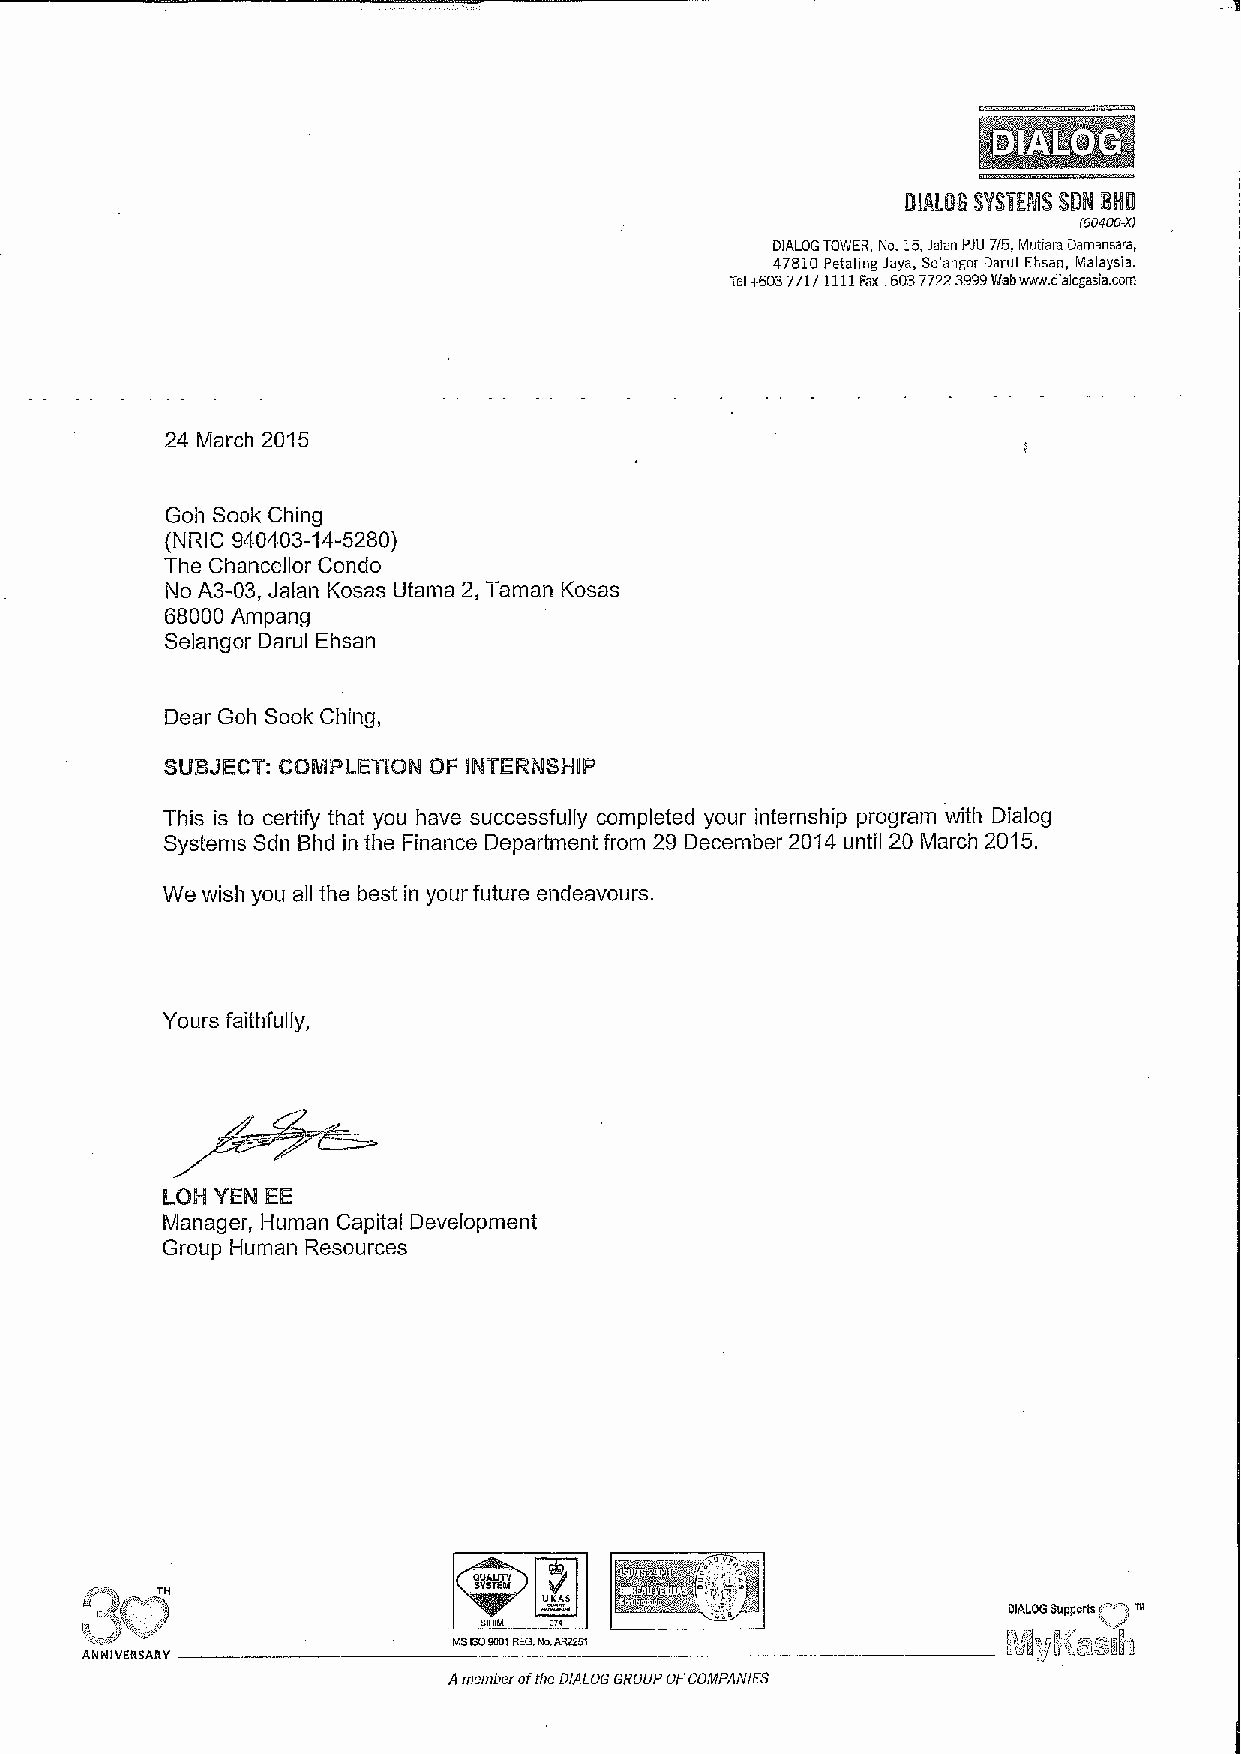 Intern Letter Of Recommendation Unique Reference Letter Internship Report